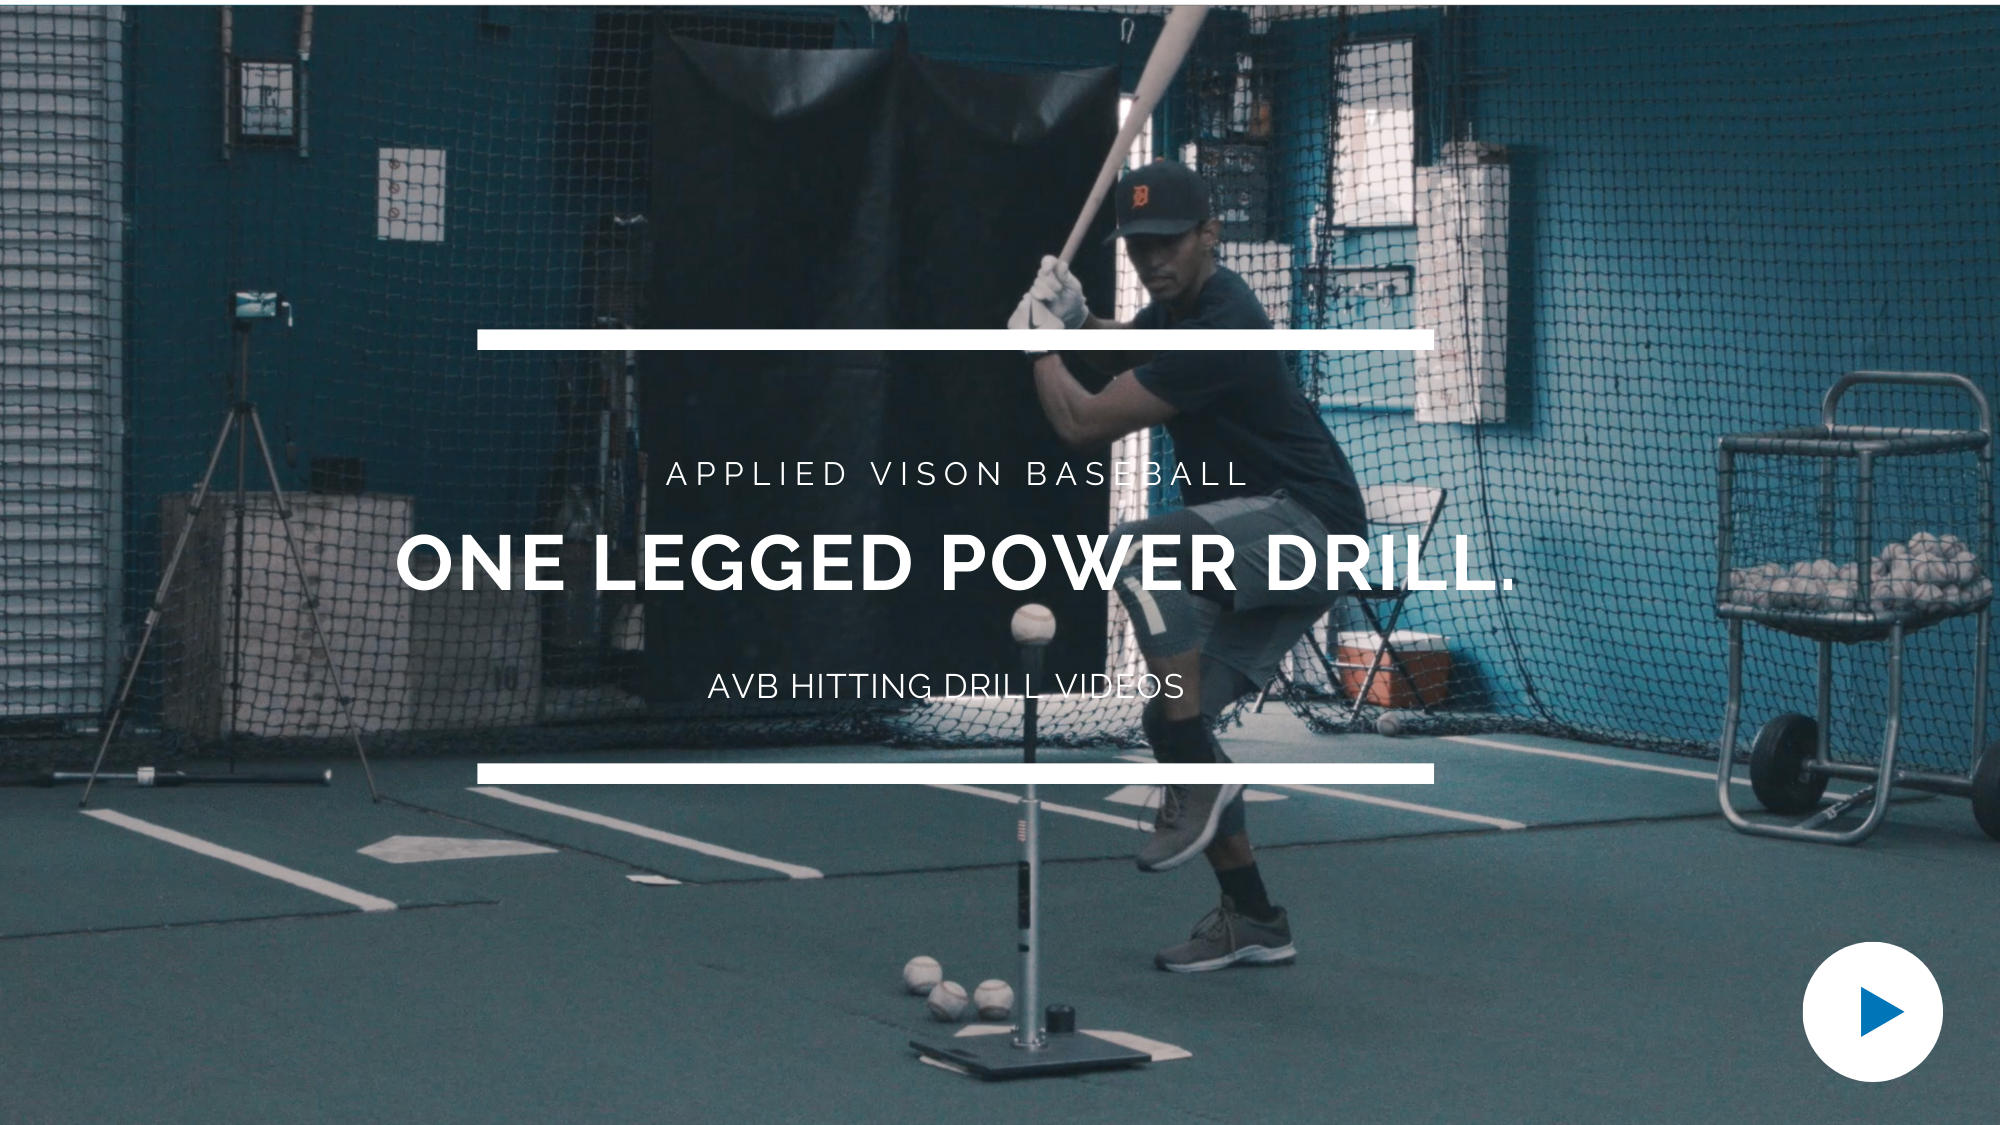 How To 3x Your Torque While Using Your Entire Body In Your Swing.